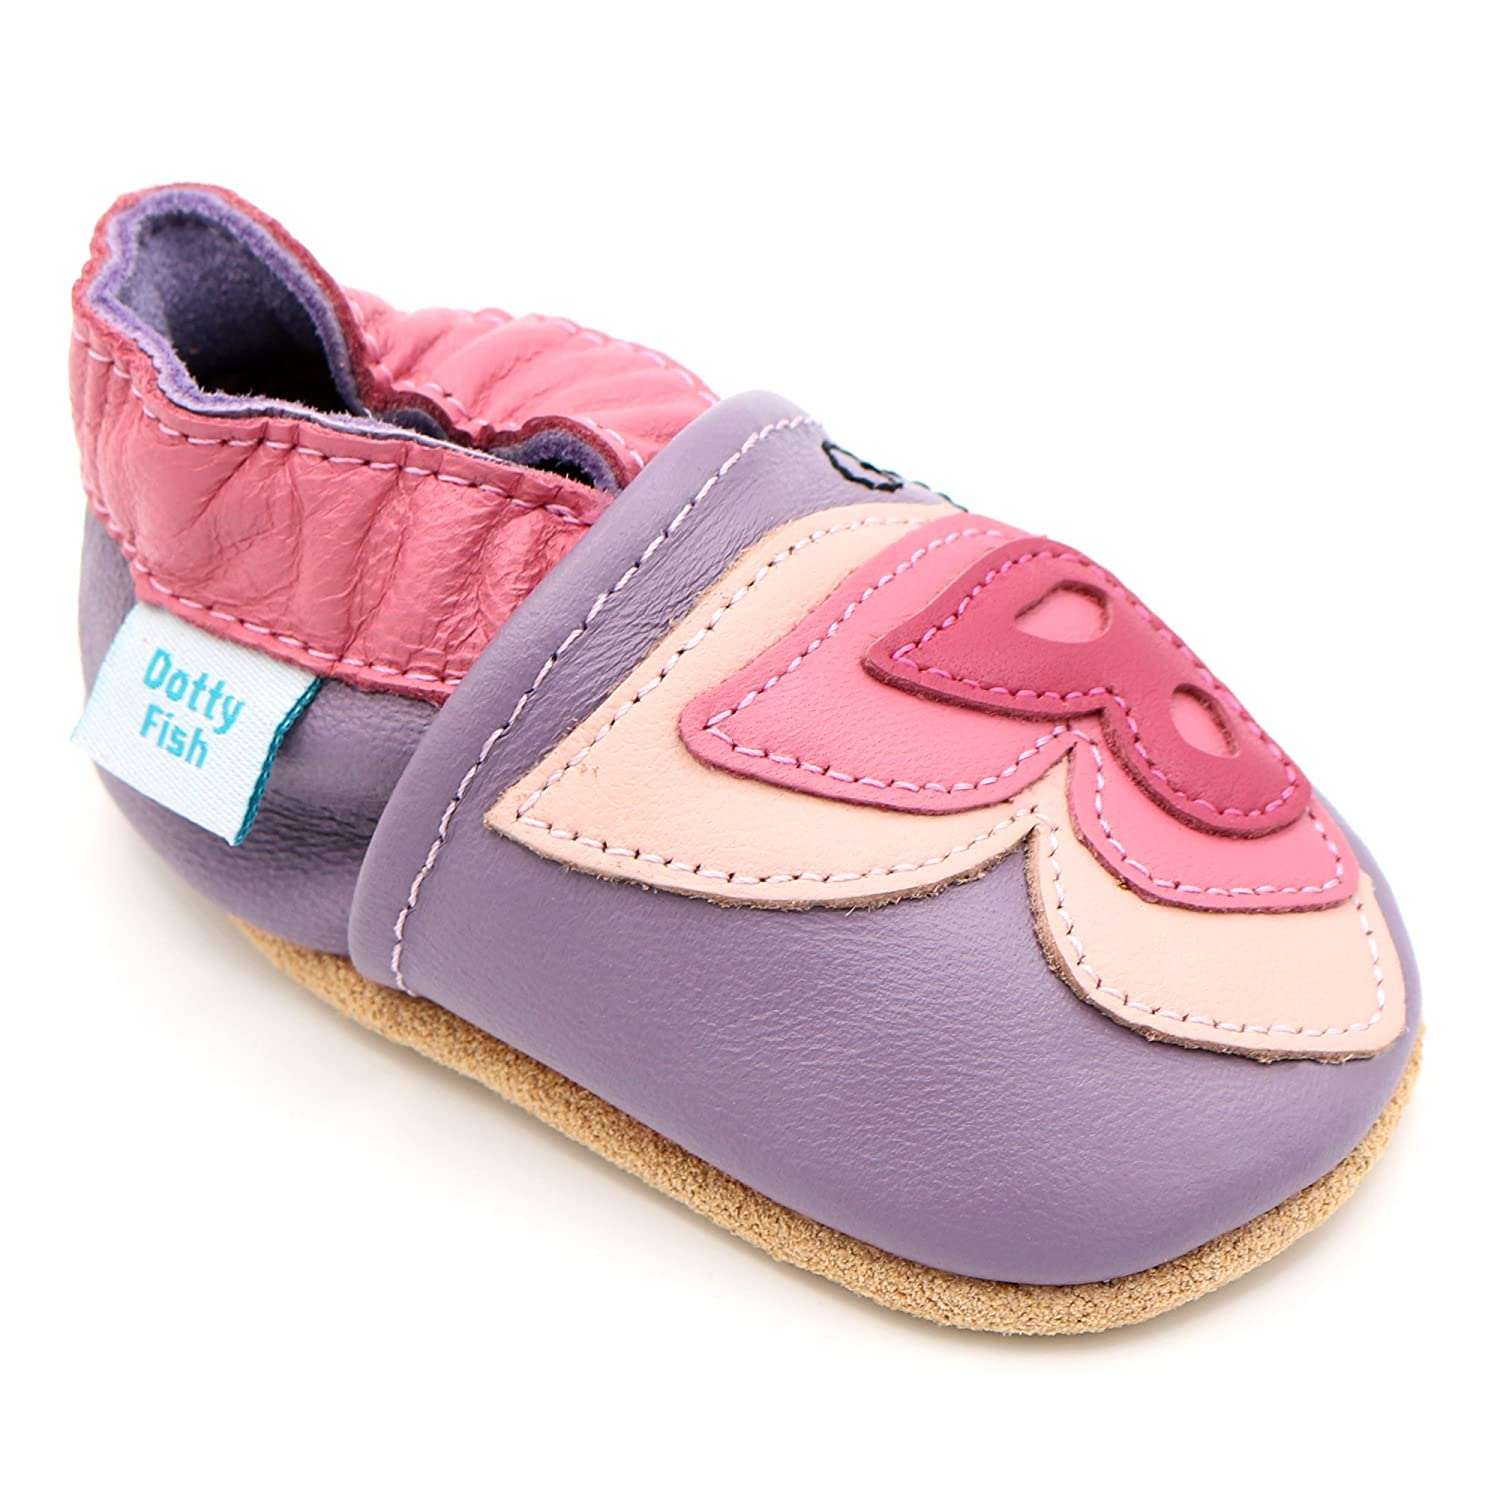 1e6f6a54ed38f Dotty Fish Soft Leather Baby Shoe. 0-6 Months to 4-5 Years. Toddler Shoes.  Non Slip. Pretty Bird, Owl, Giraffe, Butterfly and Cloud Designs for Girls.